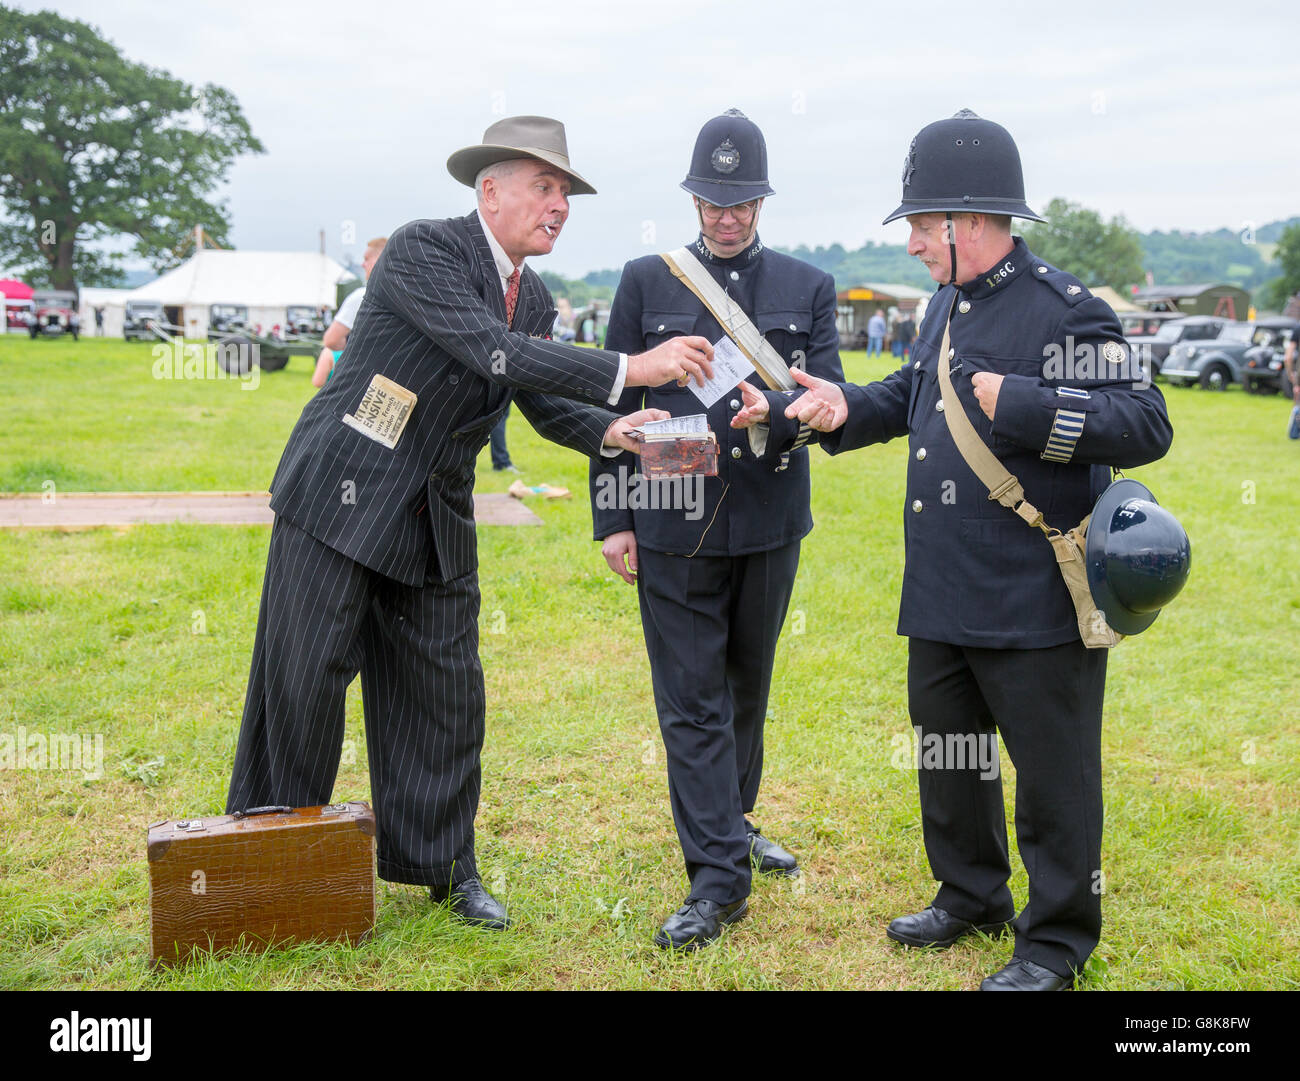 A spiv and police officers at the 'Dig For VIctory Show' at the NOrth Somerset Show Ground - Stock Image